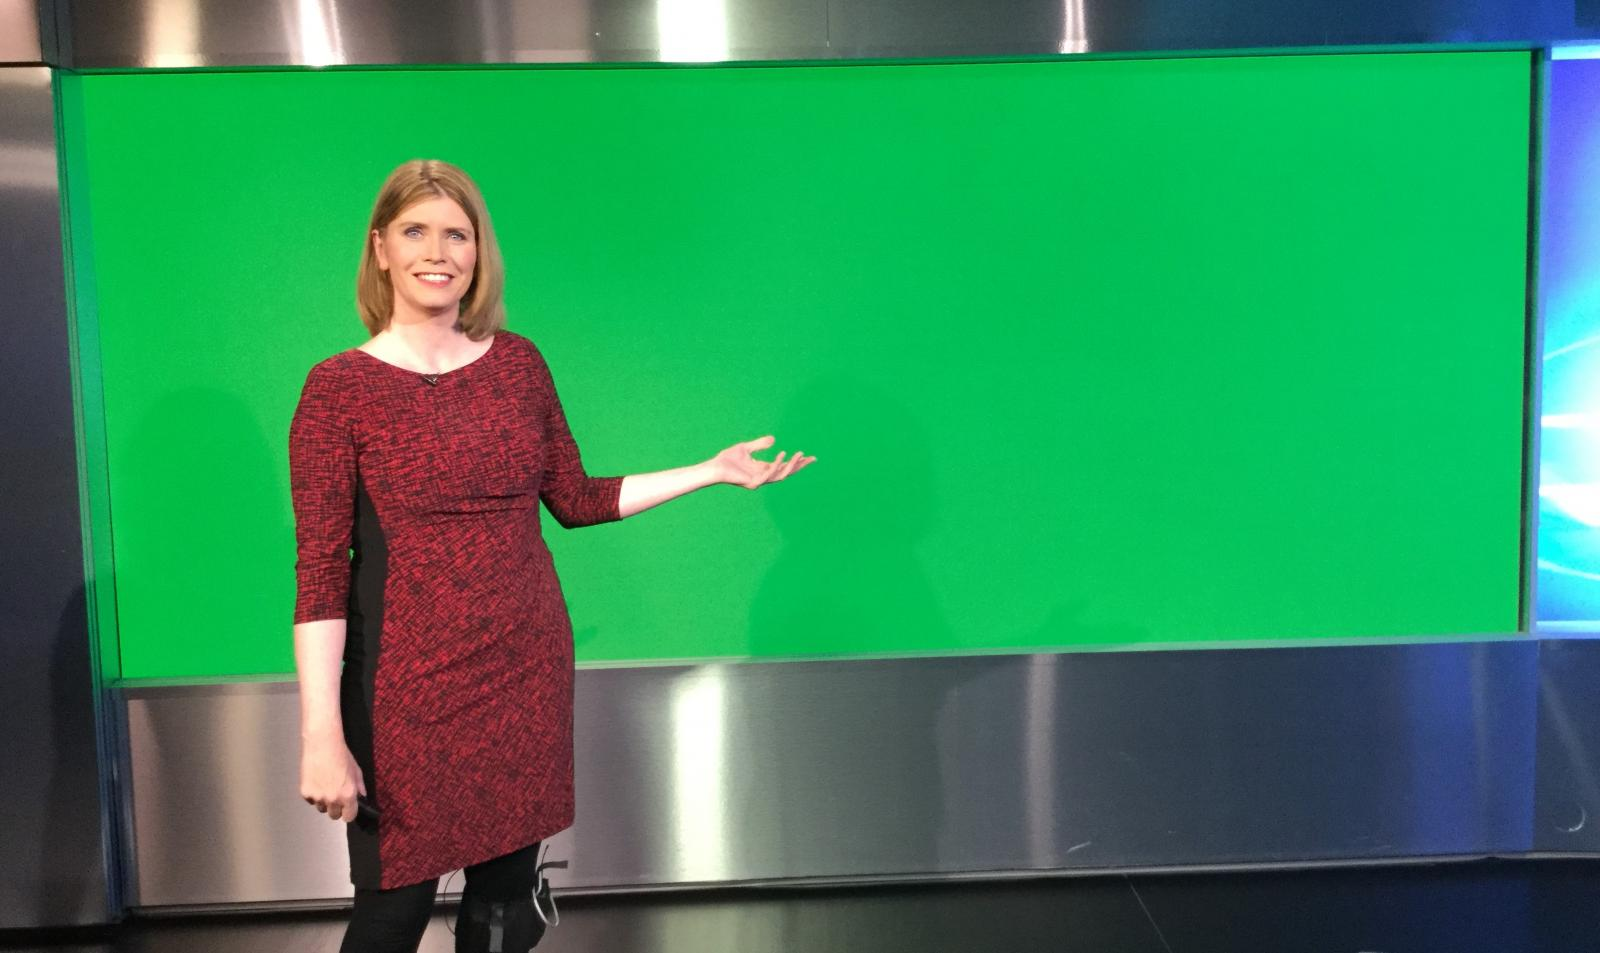 Behind the scenes of television weather. Green screen, clickers and cameras